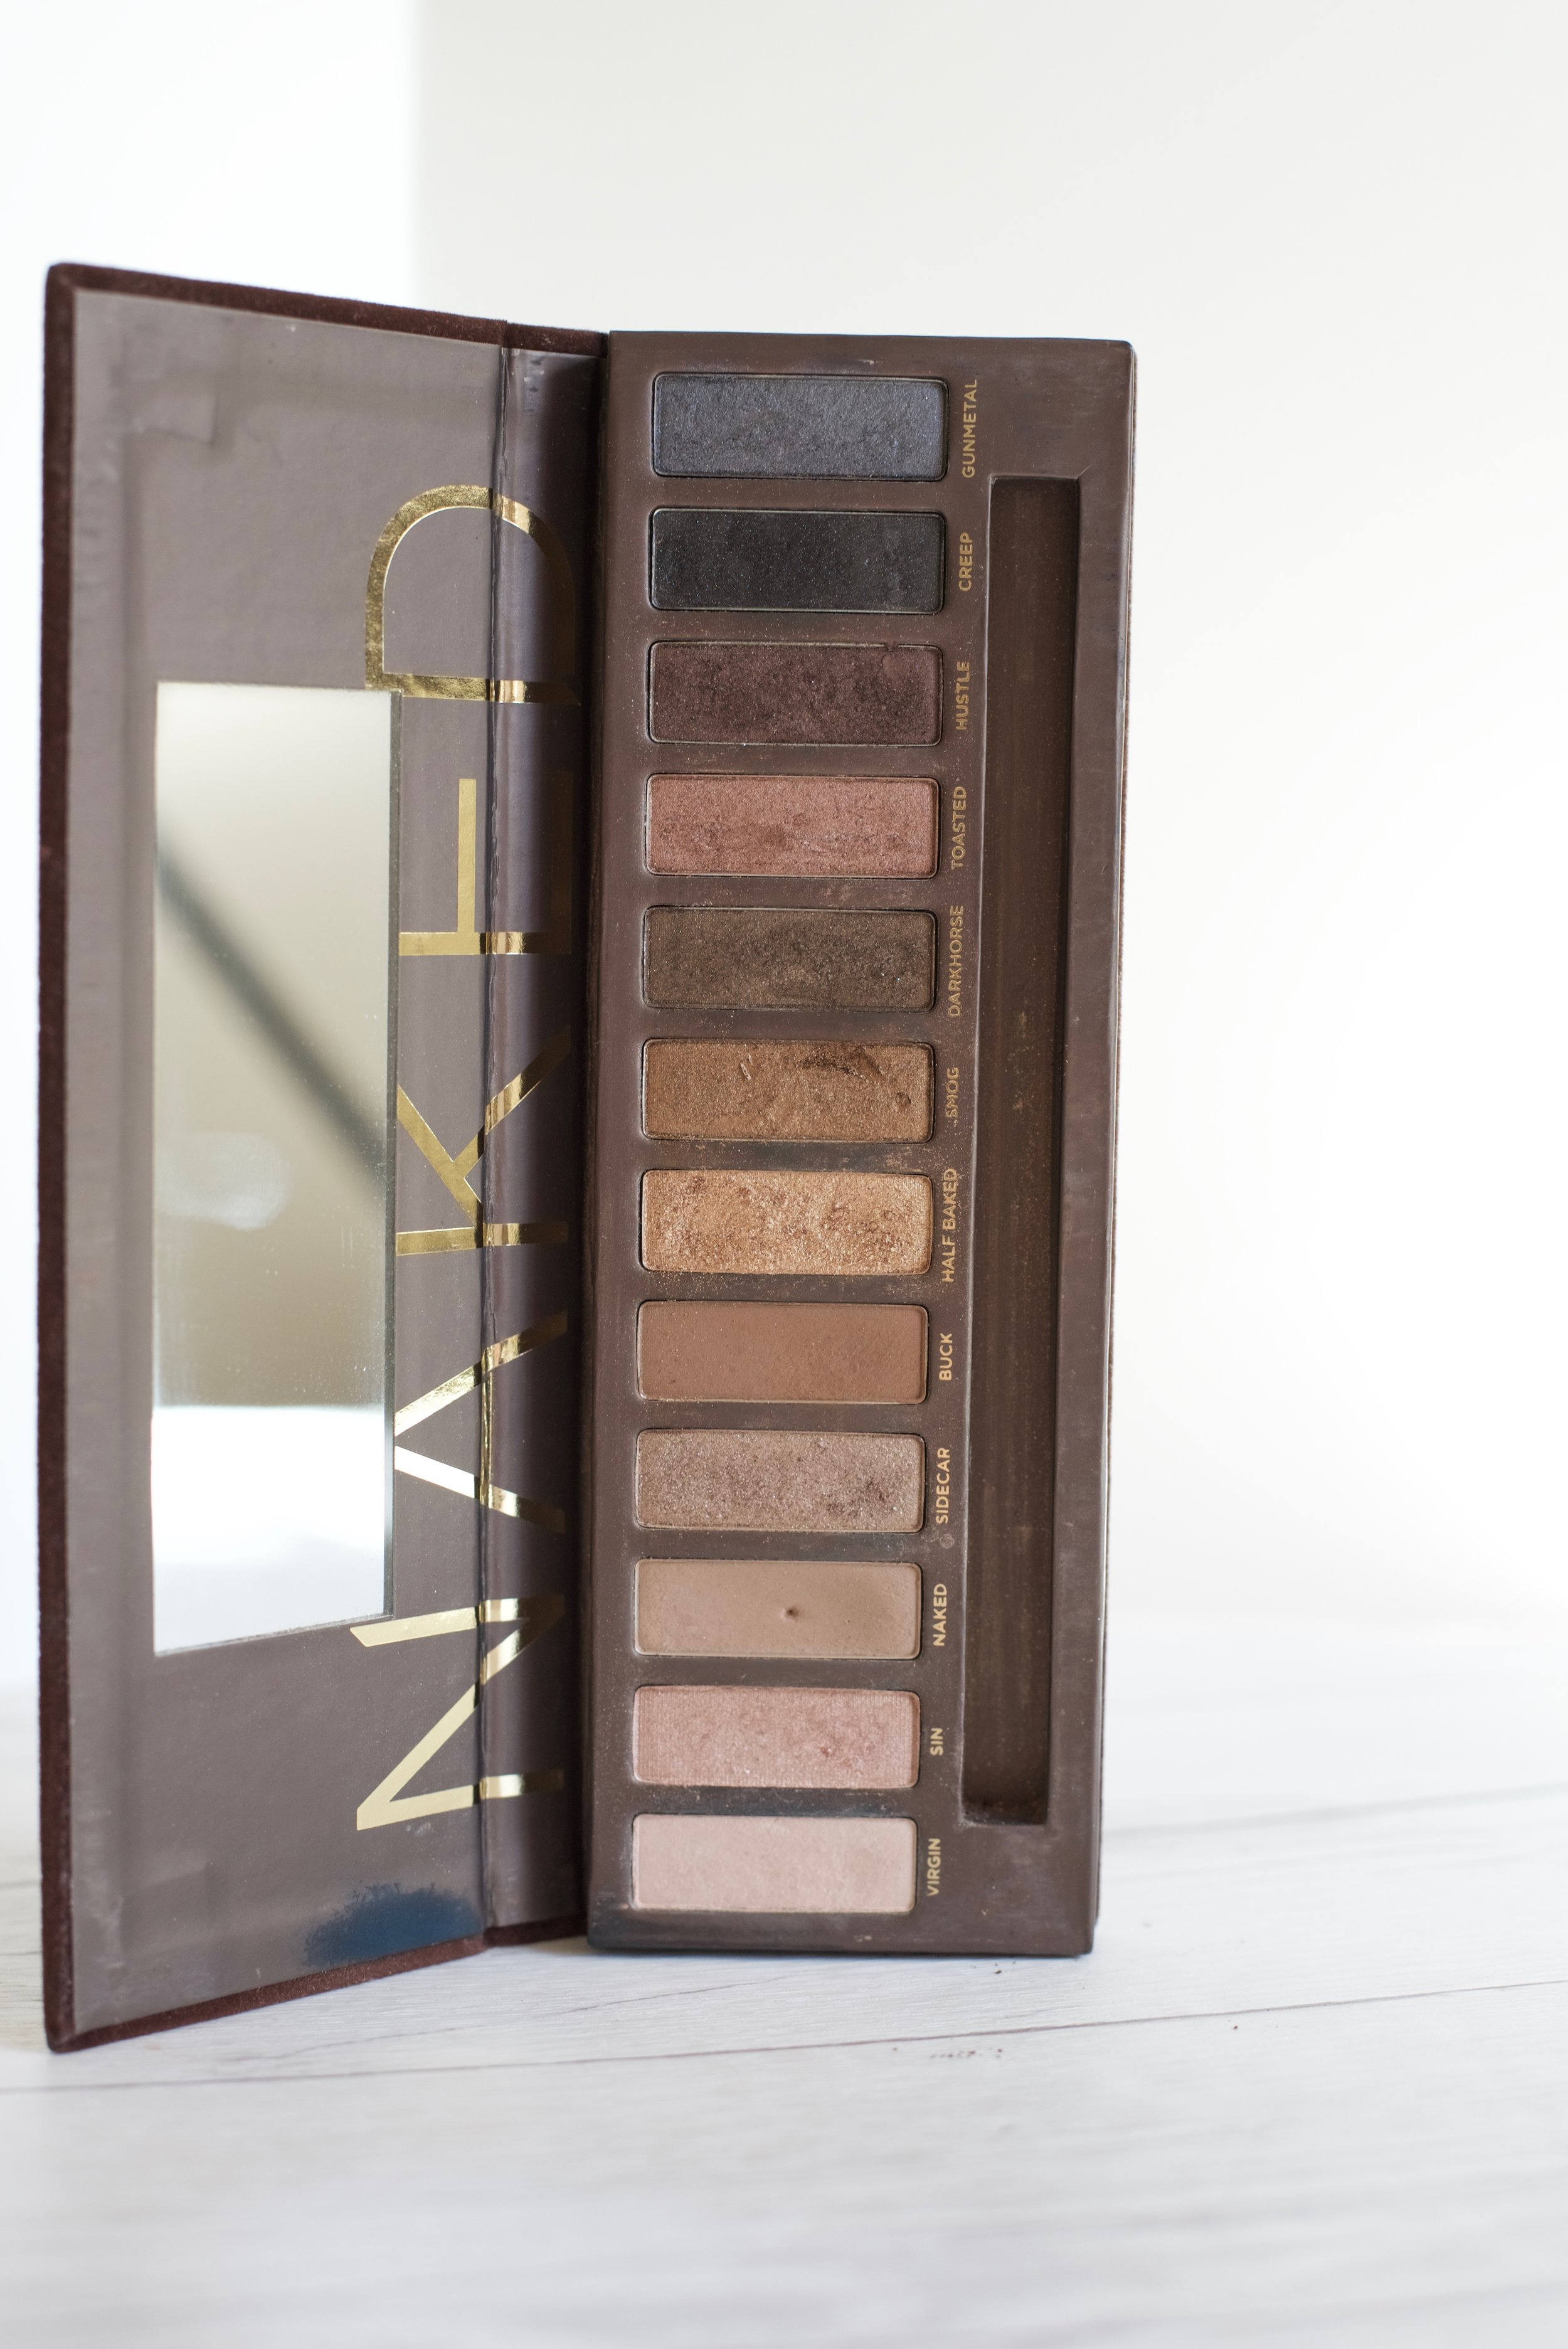 Urban Decay Naked I - I'm kind of embarrassed to say how long I've had this palette, but I've rediscovered it and fallen in love all over again. The shades of brown in this palette are so much more flattering than all the other neutral palettes I own.